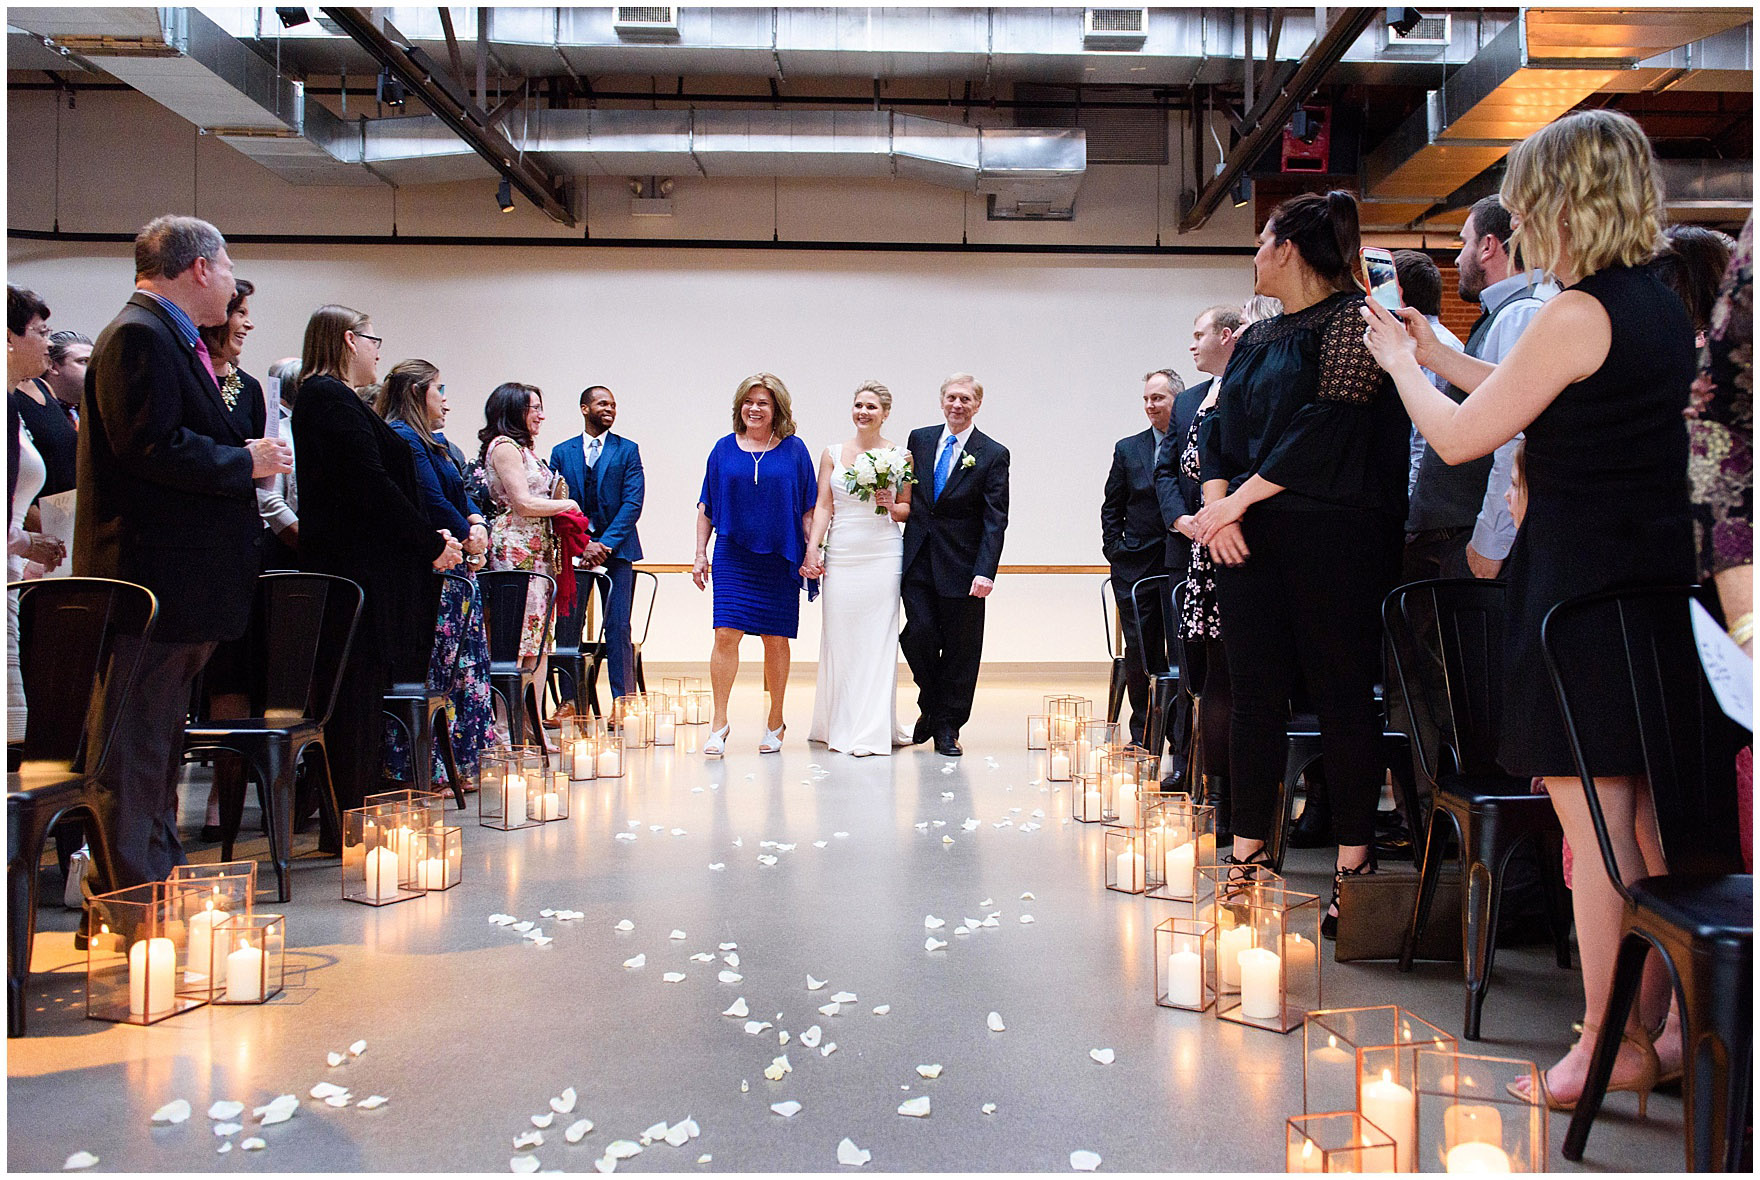 The bride walks down the aisle at an Ovation Chicago wedding.